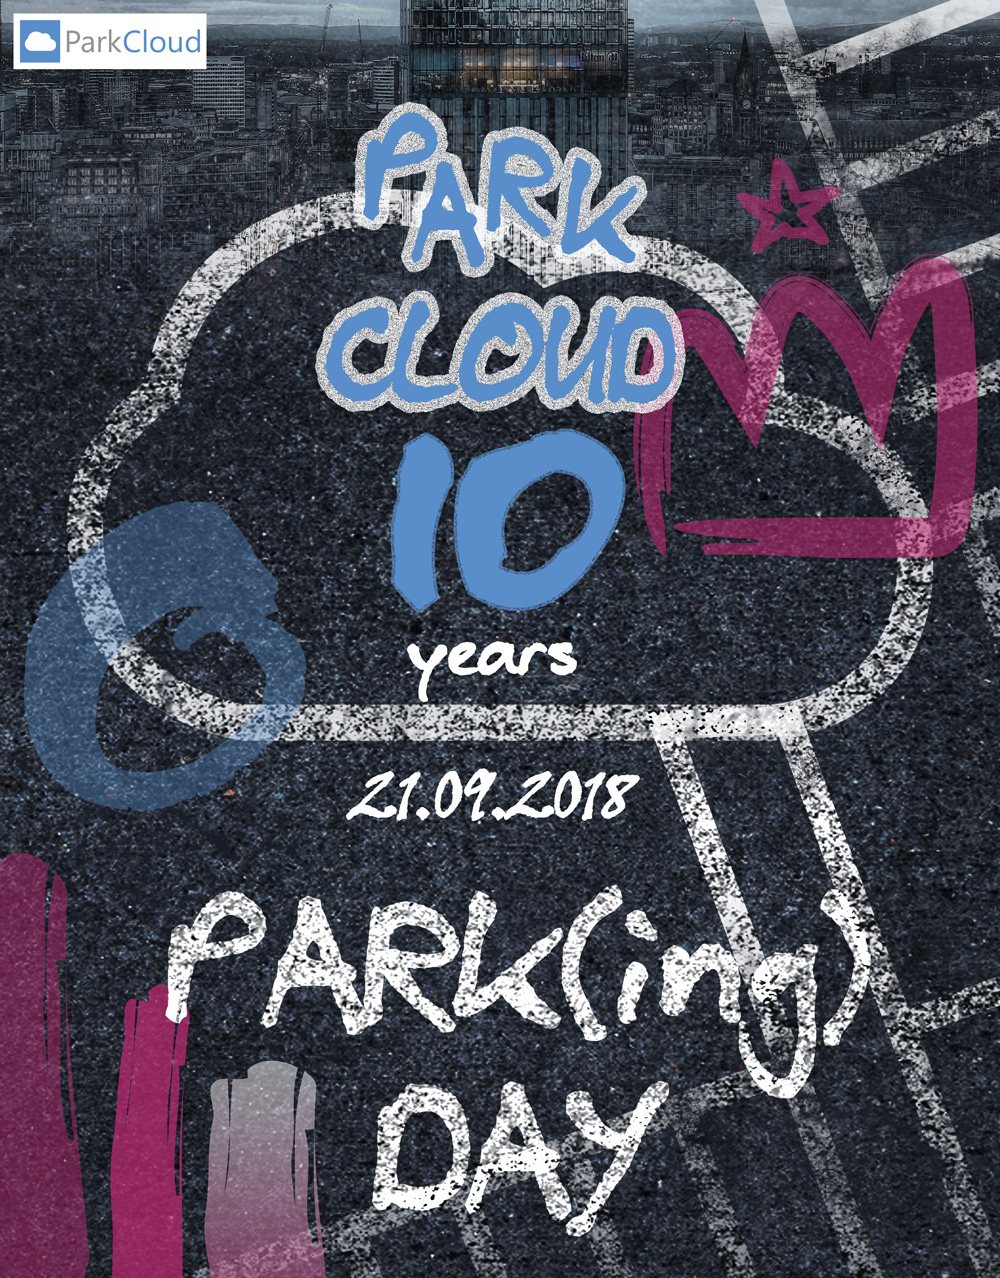 ParkCloud Joins Forces With Q-Park For PARK(ing) Day